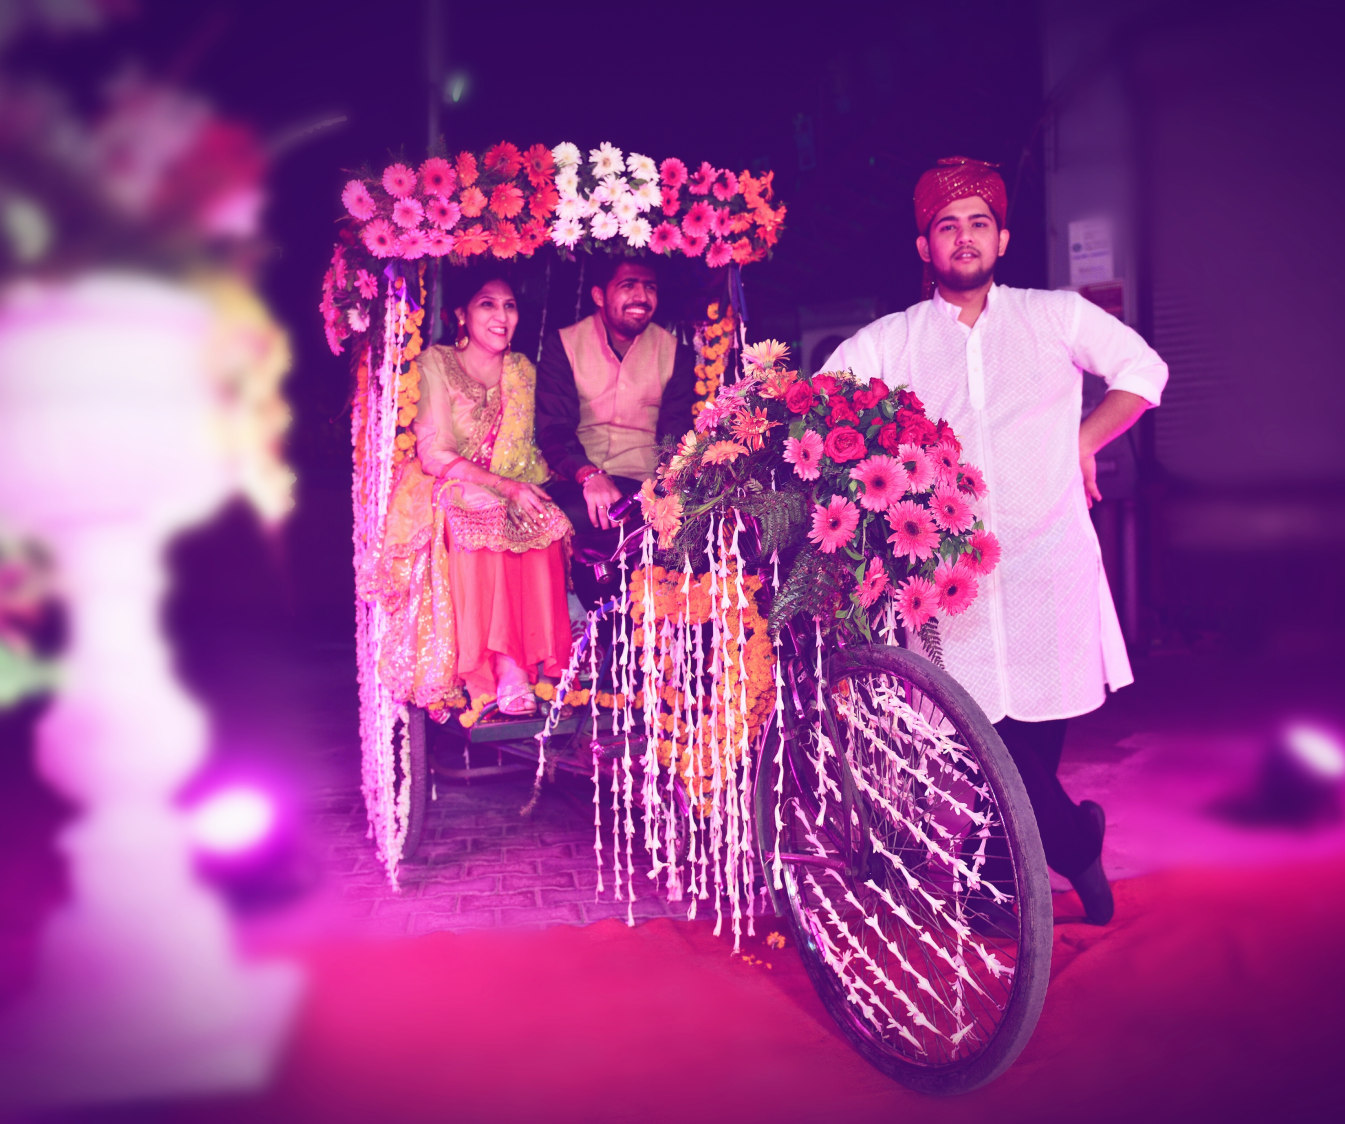 Bicycle Prop With Floral Decor Ideas by Himanshu Chauhan Wedding-decor | Weddings Photos & Ideas